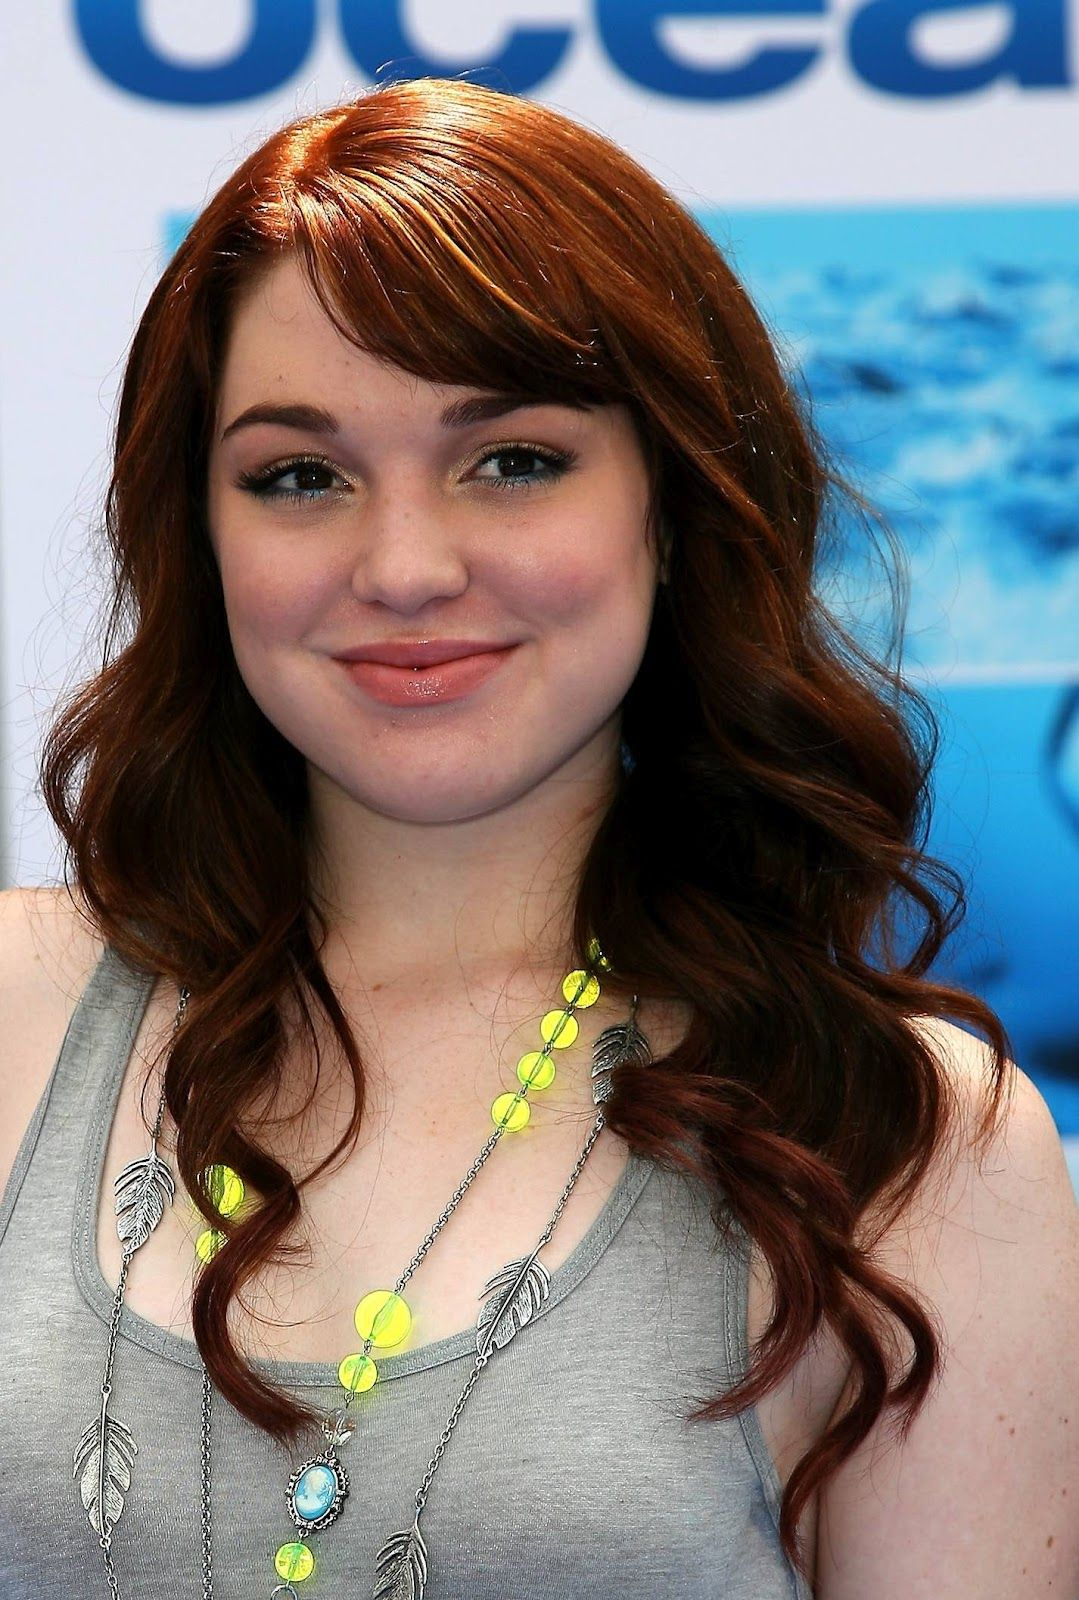 Hairstyles for long hair for homecoming wallpaper debby ryan